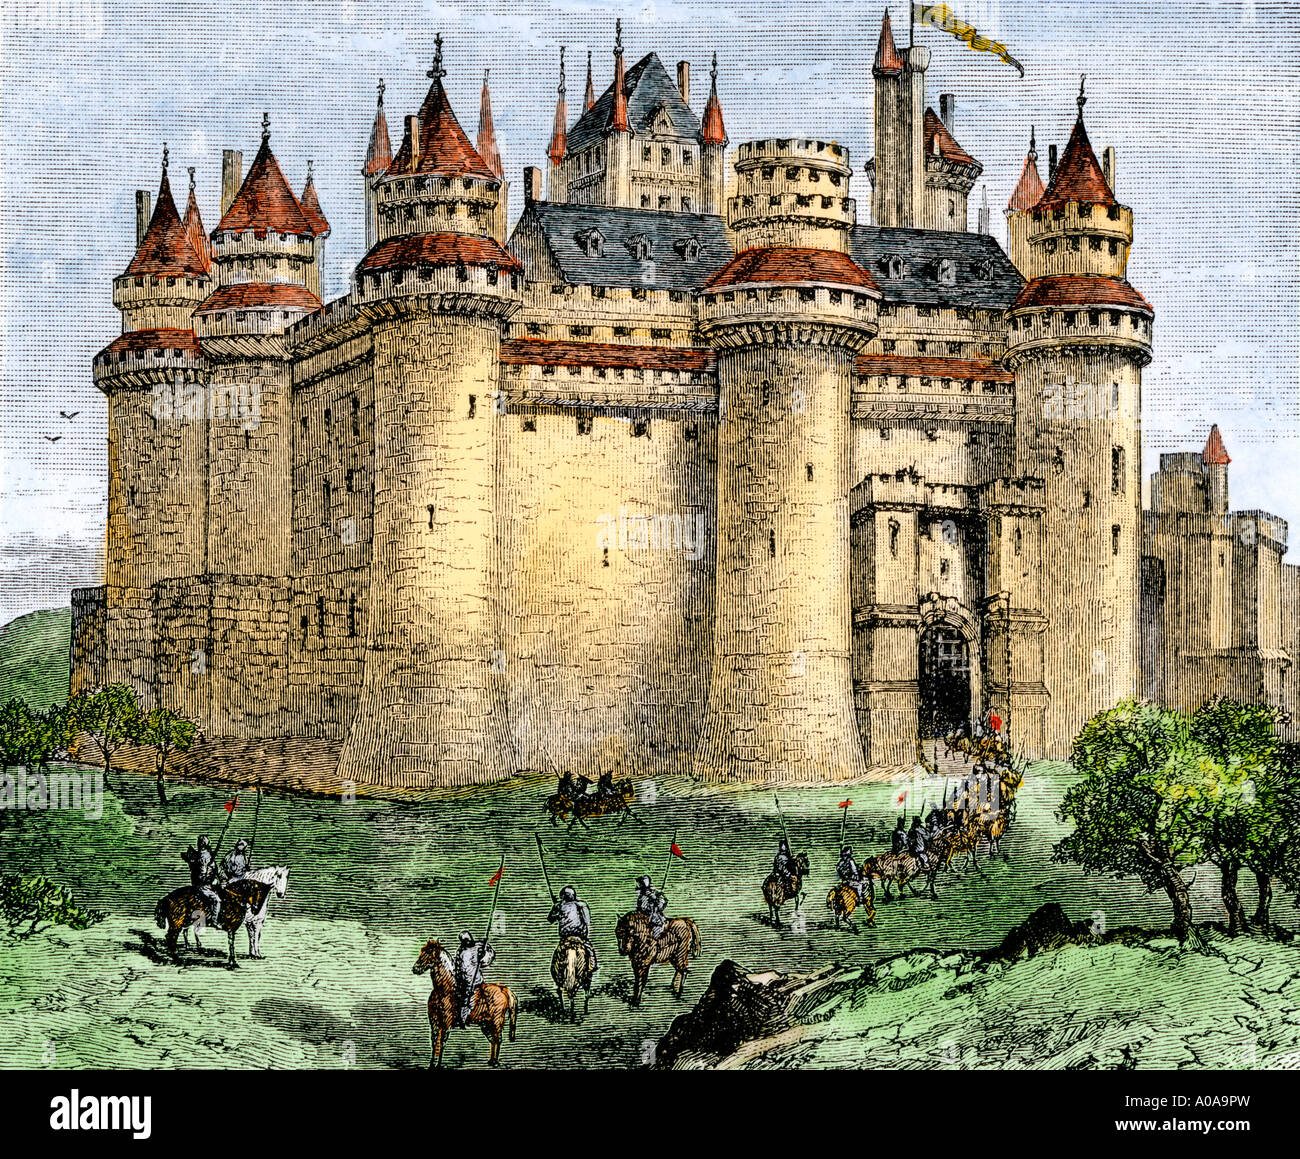 Middle Ages Britain High Resolution Stock Photography And